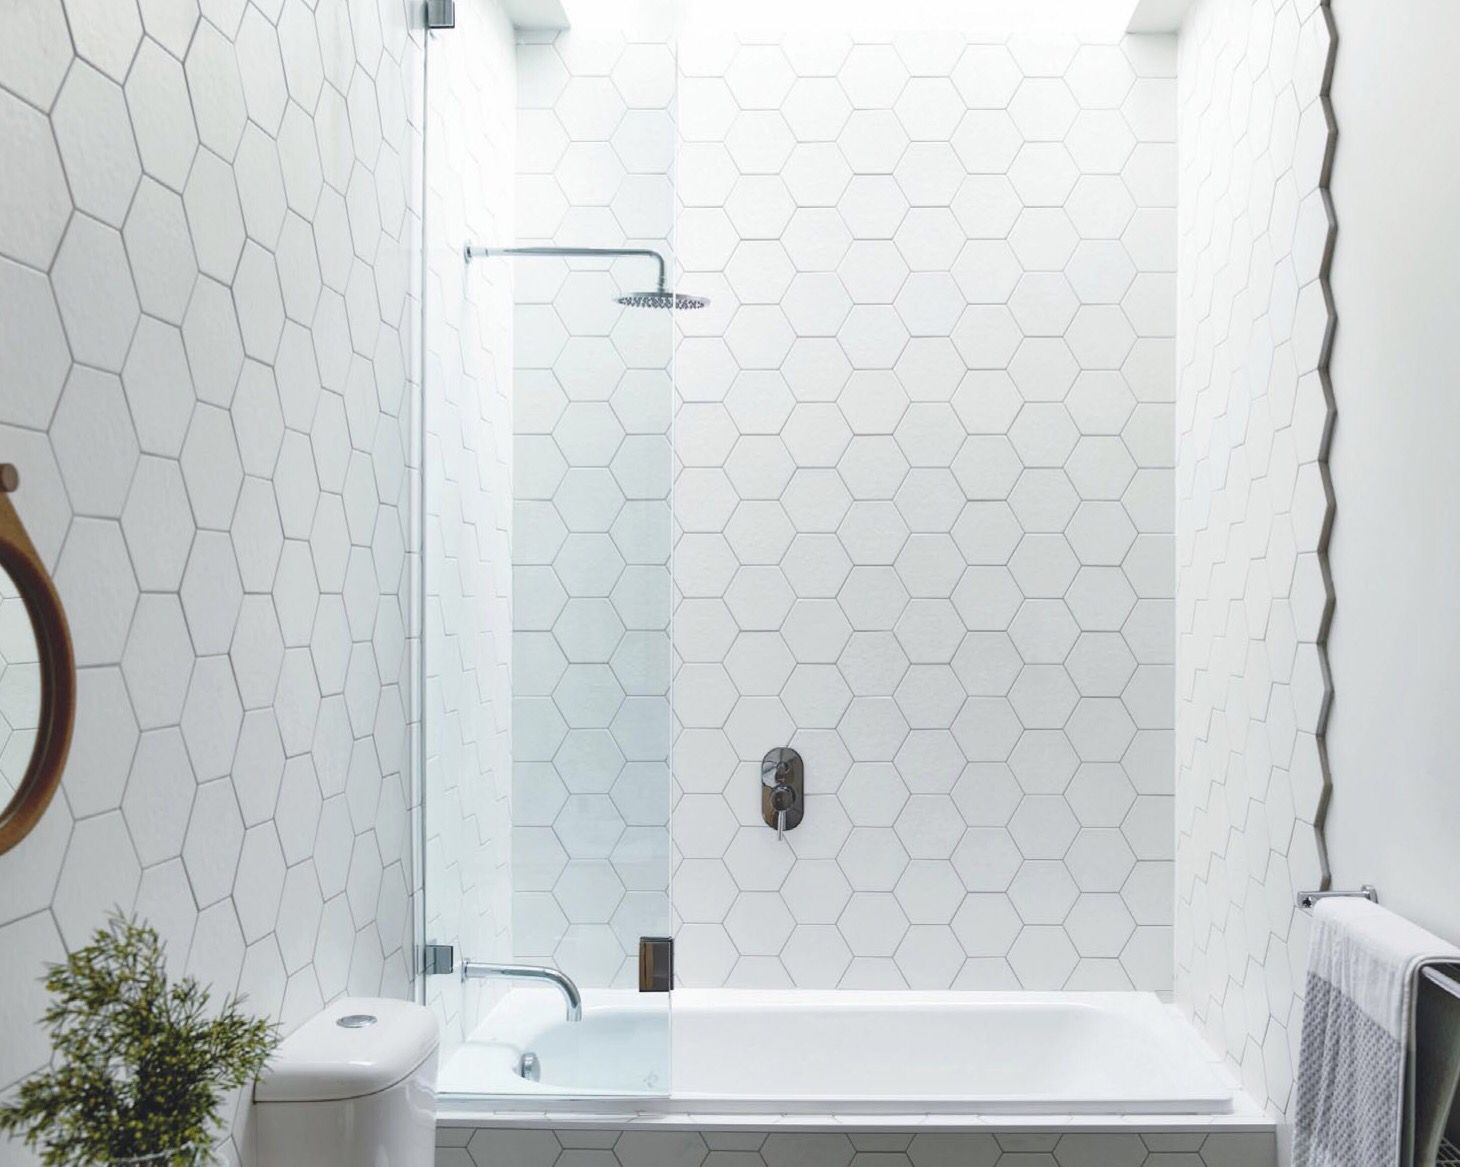 Baignoire Etroite Fab Tiles Bathroom Ideas Pinterest Salle De Bain